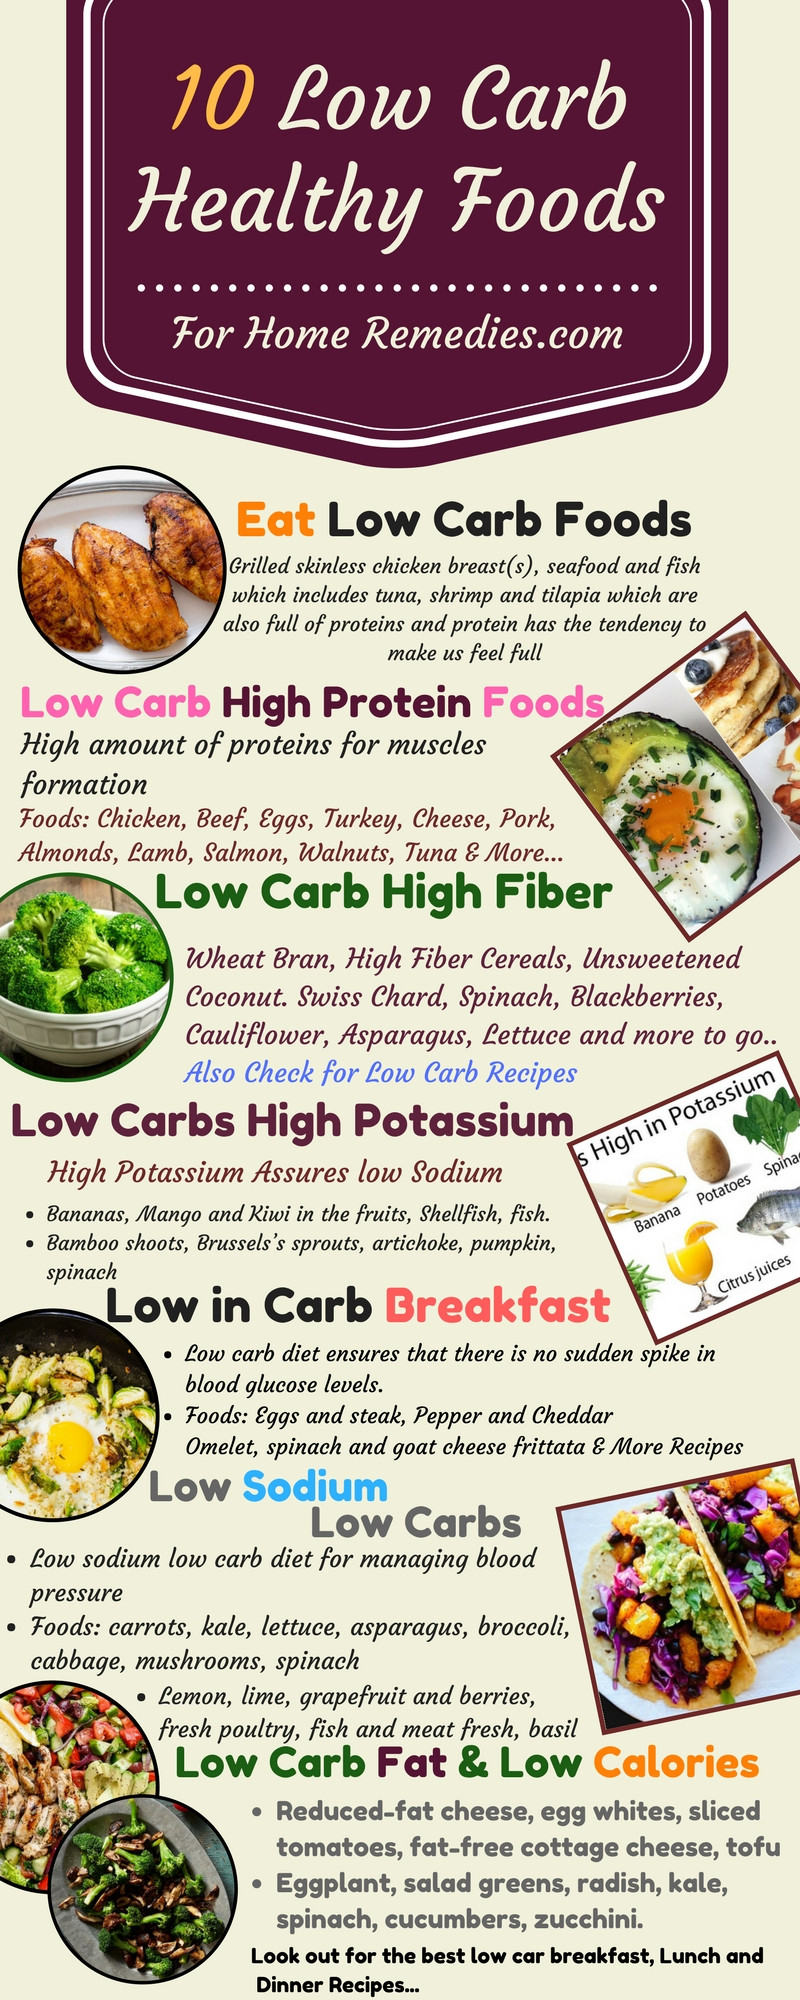 High Protein Low Carb Low Fat Diet  10 Low Carb Foods Low Fat Sugar High Protein Fiber